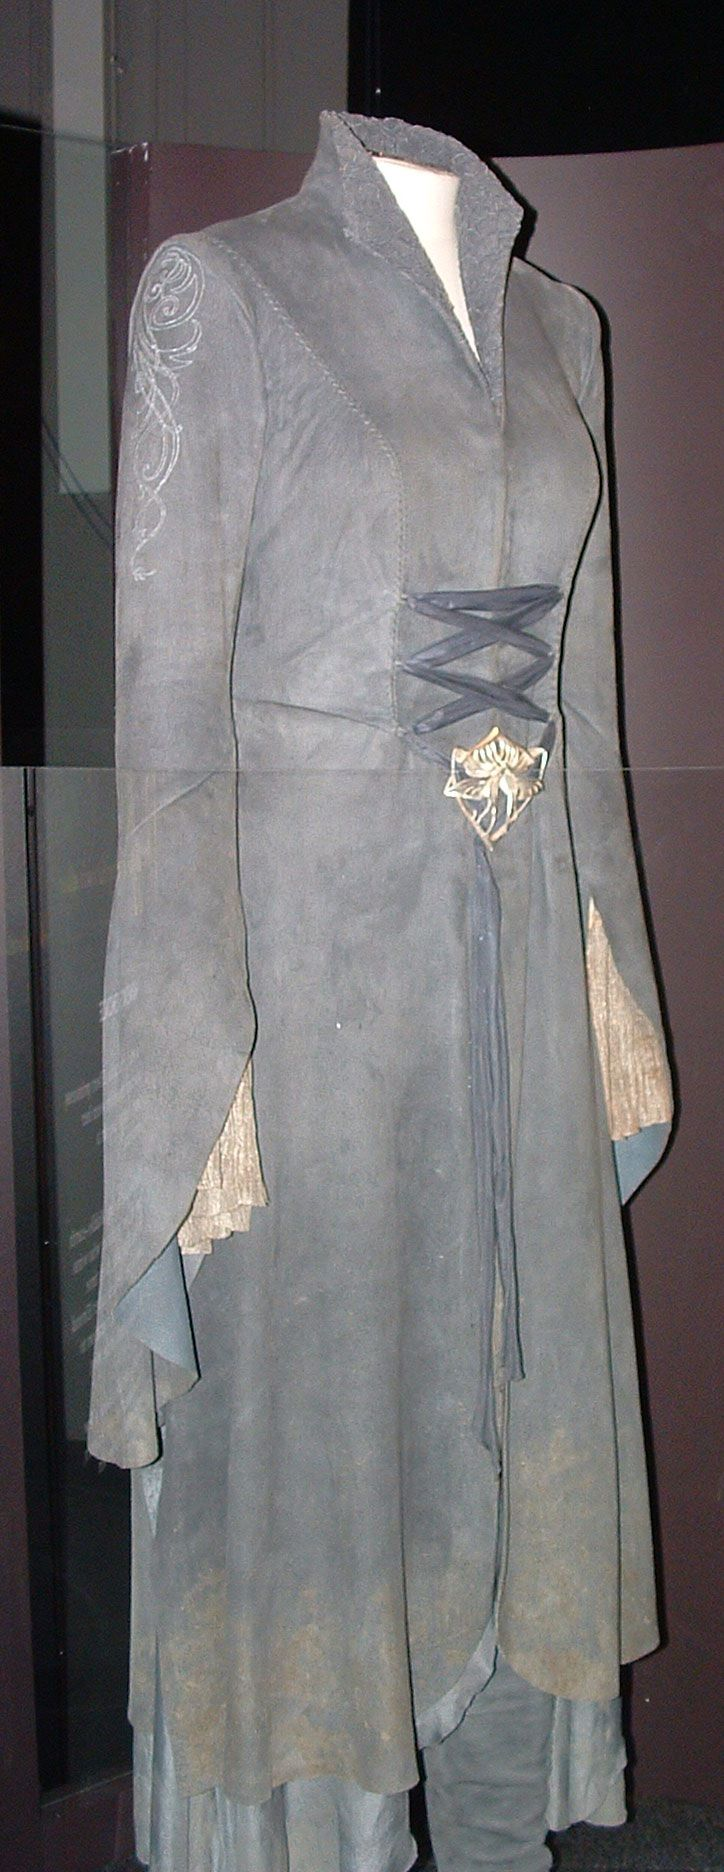 The riding dress Arwen wears while fleeing  with Frodo from the Nazgul in The Lord of the Rings: The Fellowship of the Ring.